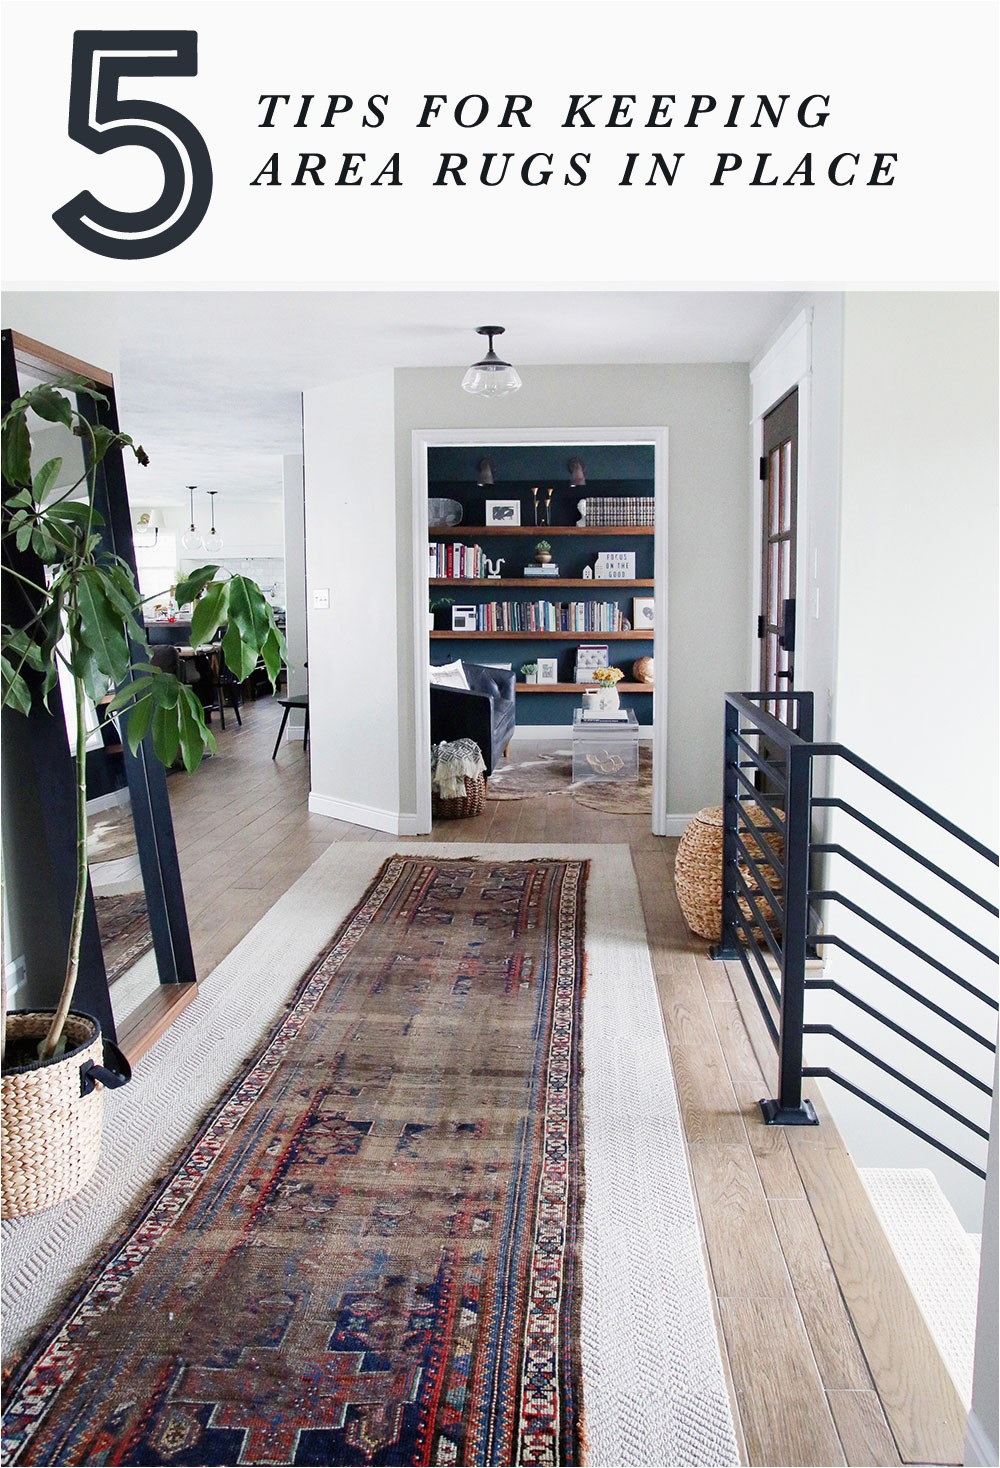 5 tips for keeping area rugs in place